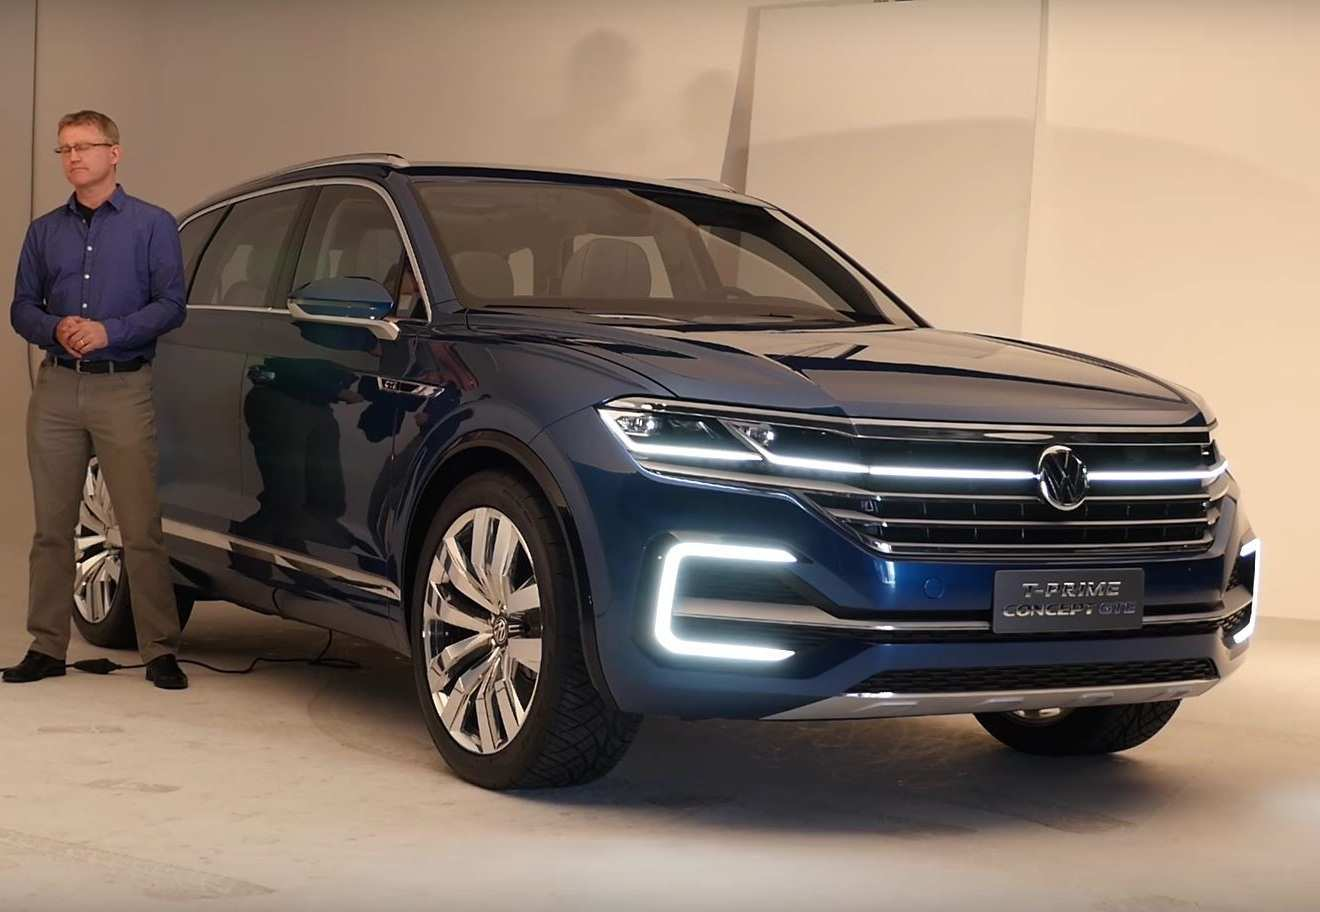 32 The Volkswagen Touareg 2020 Dimensions Release Date by Volkswagen Touareg 2020 Dimensions